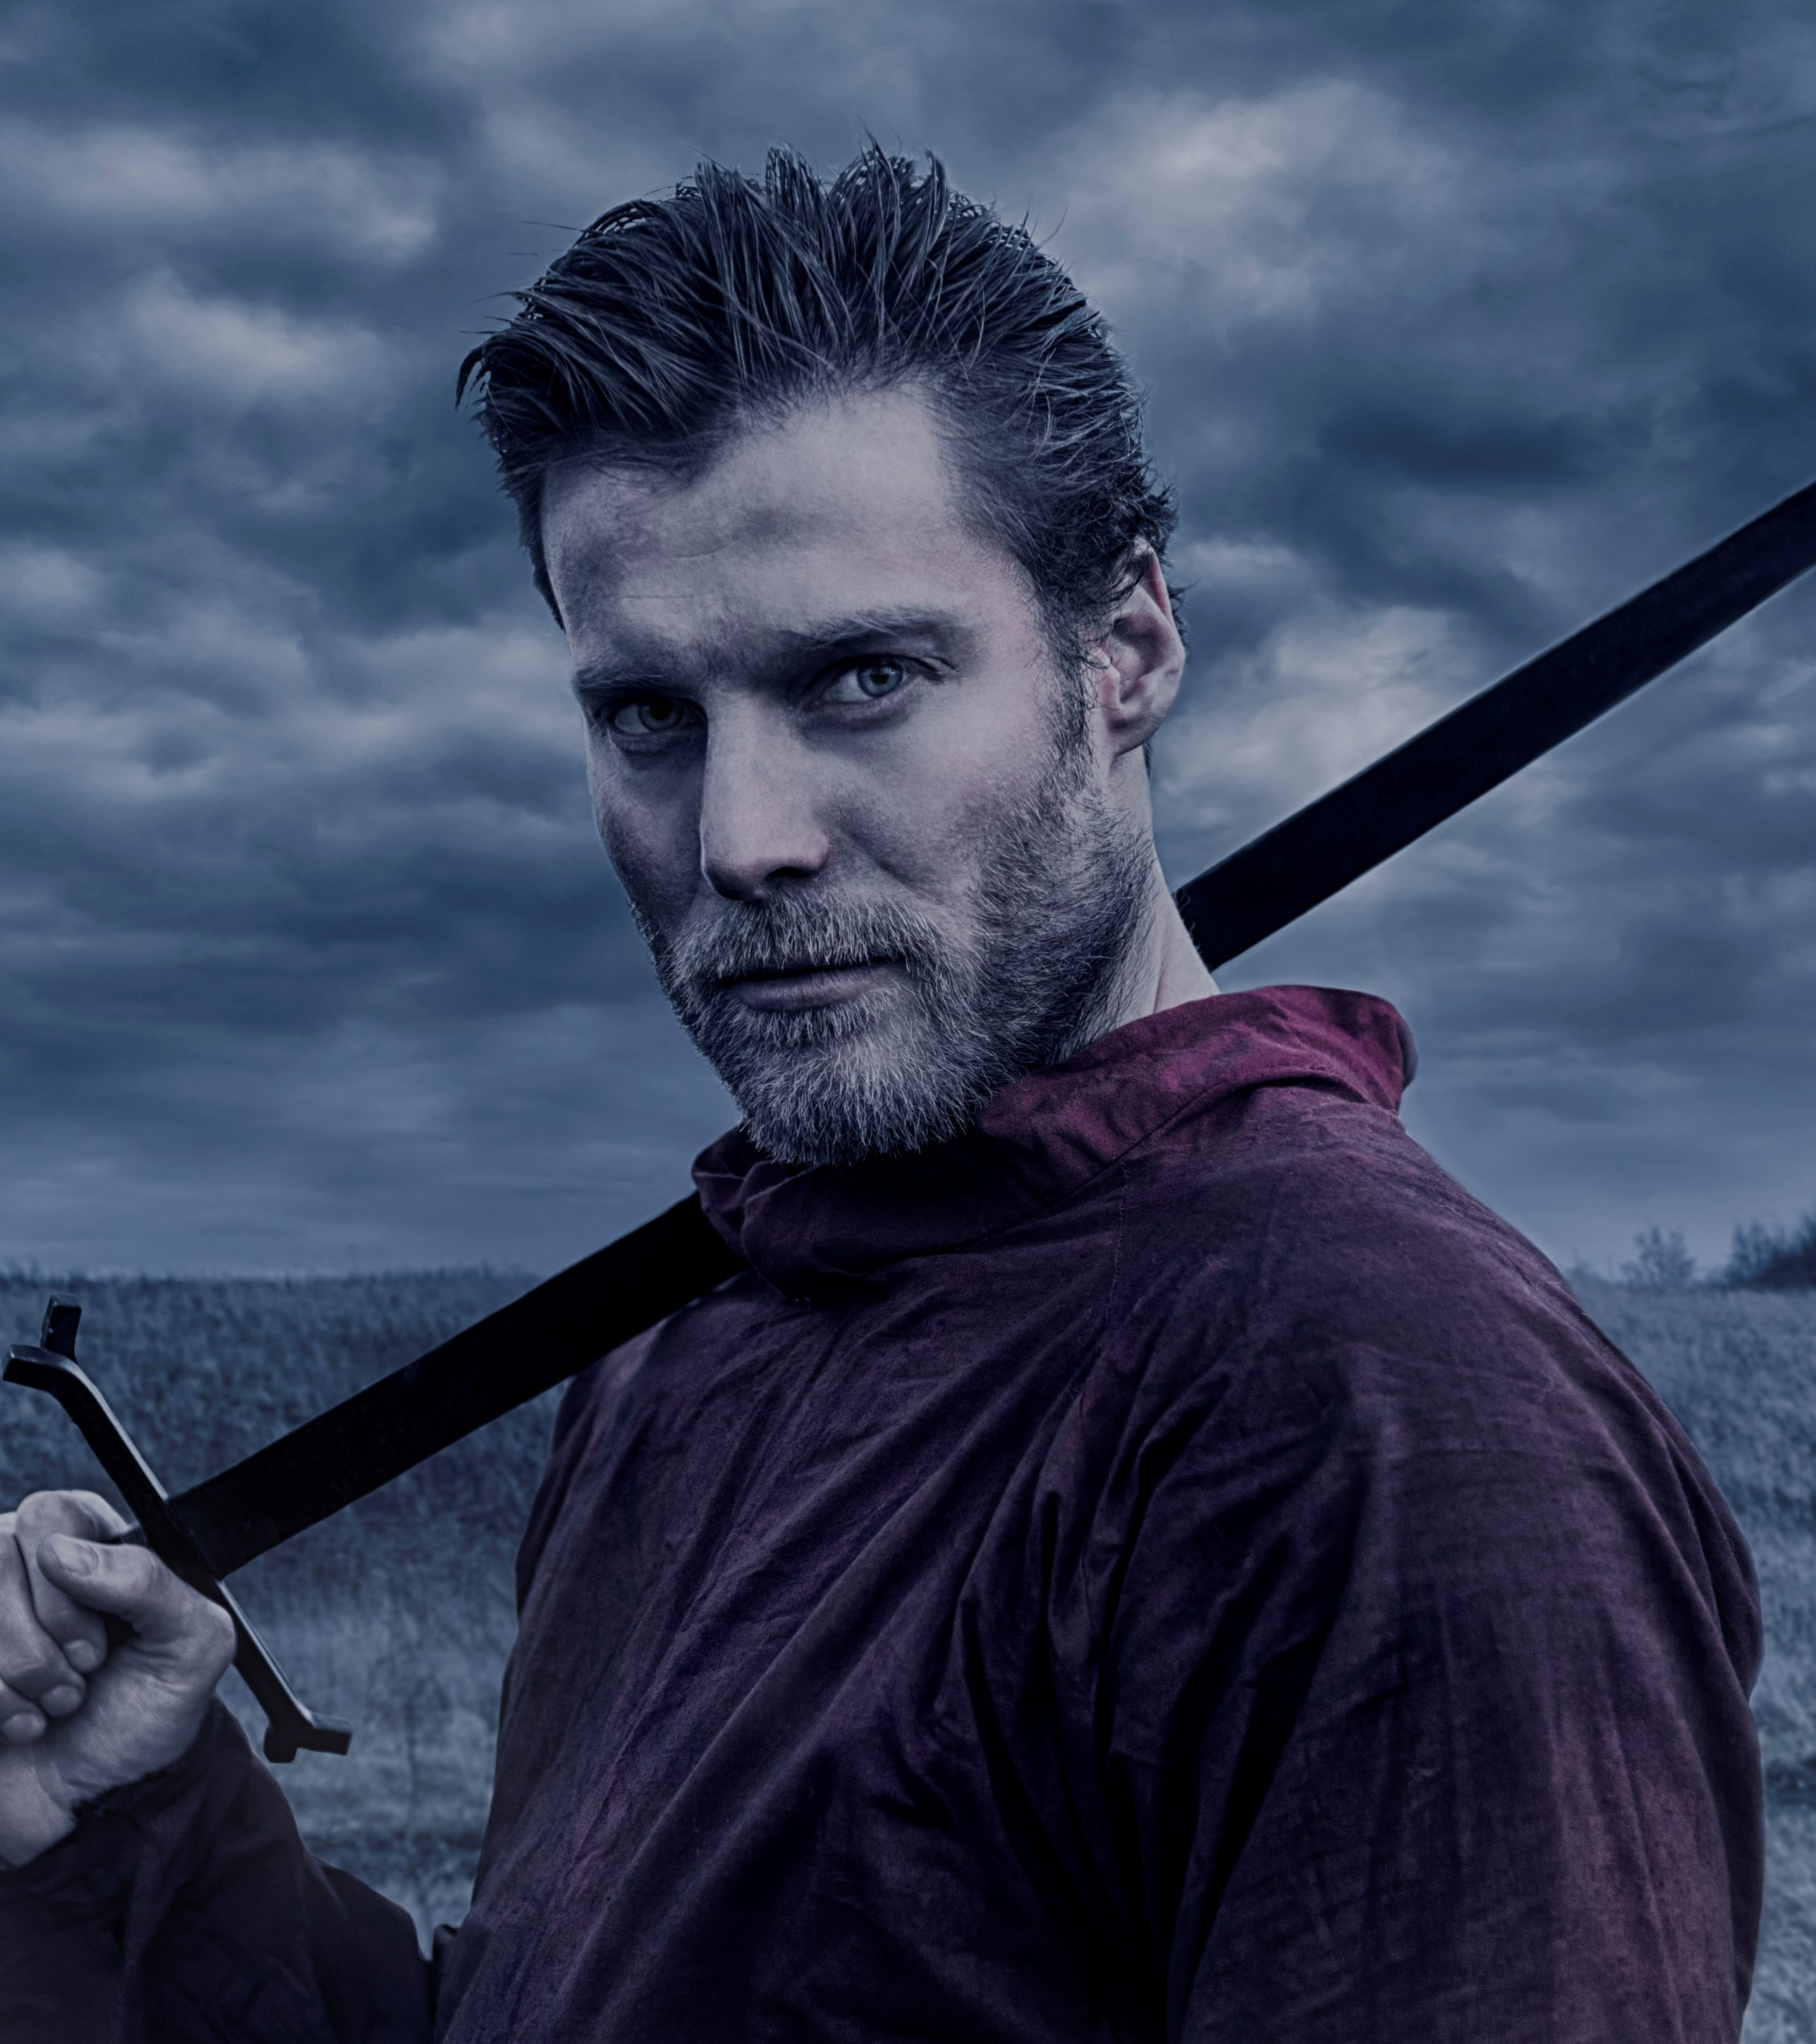 Man with beard and historic clothes holds a sword. He is in his 30s and resembles a viking warrior or a knight. He is holding a long sword, which is resting on his shoulder. Dark landscape in the background with a lonely tree.